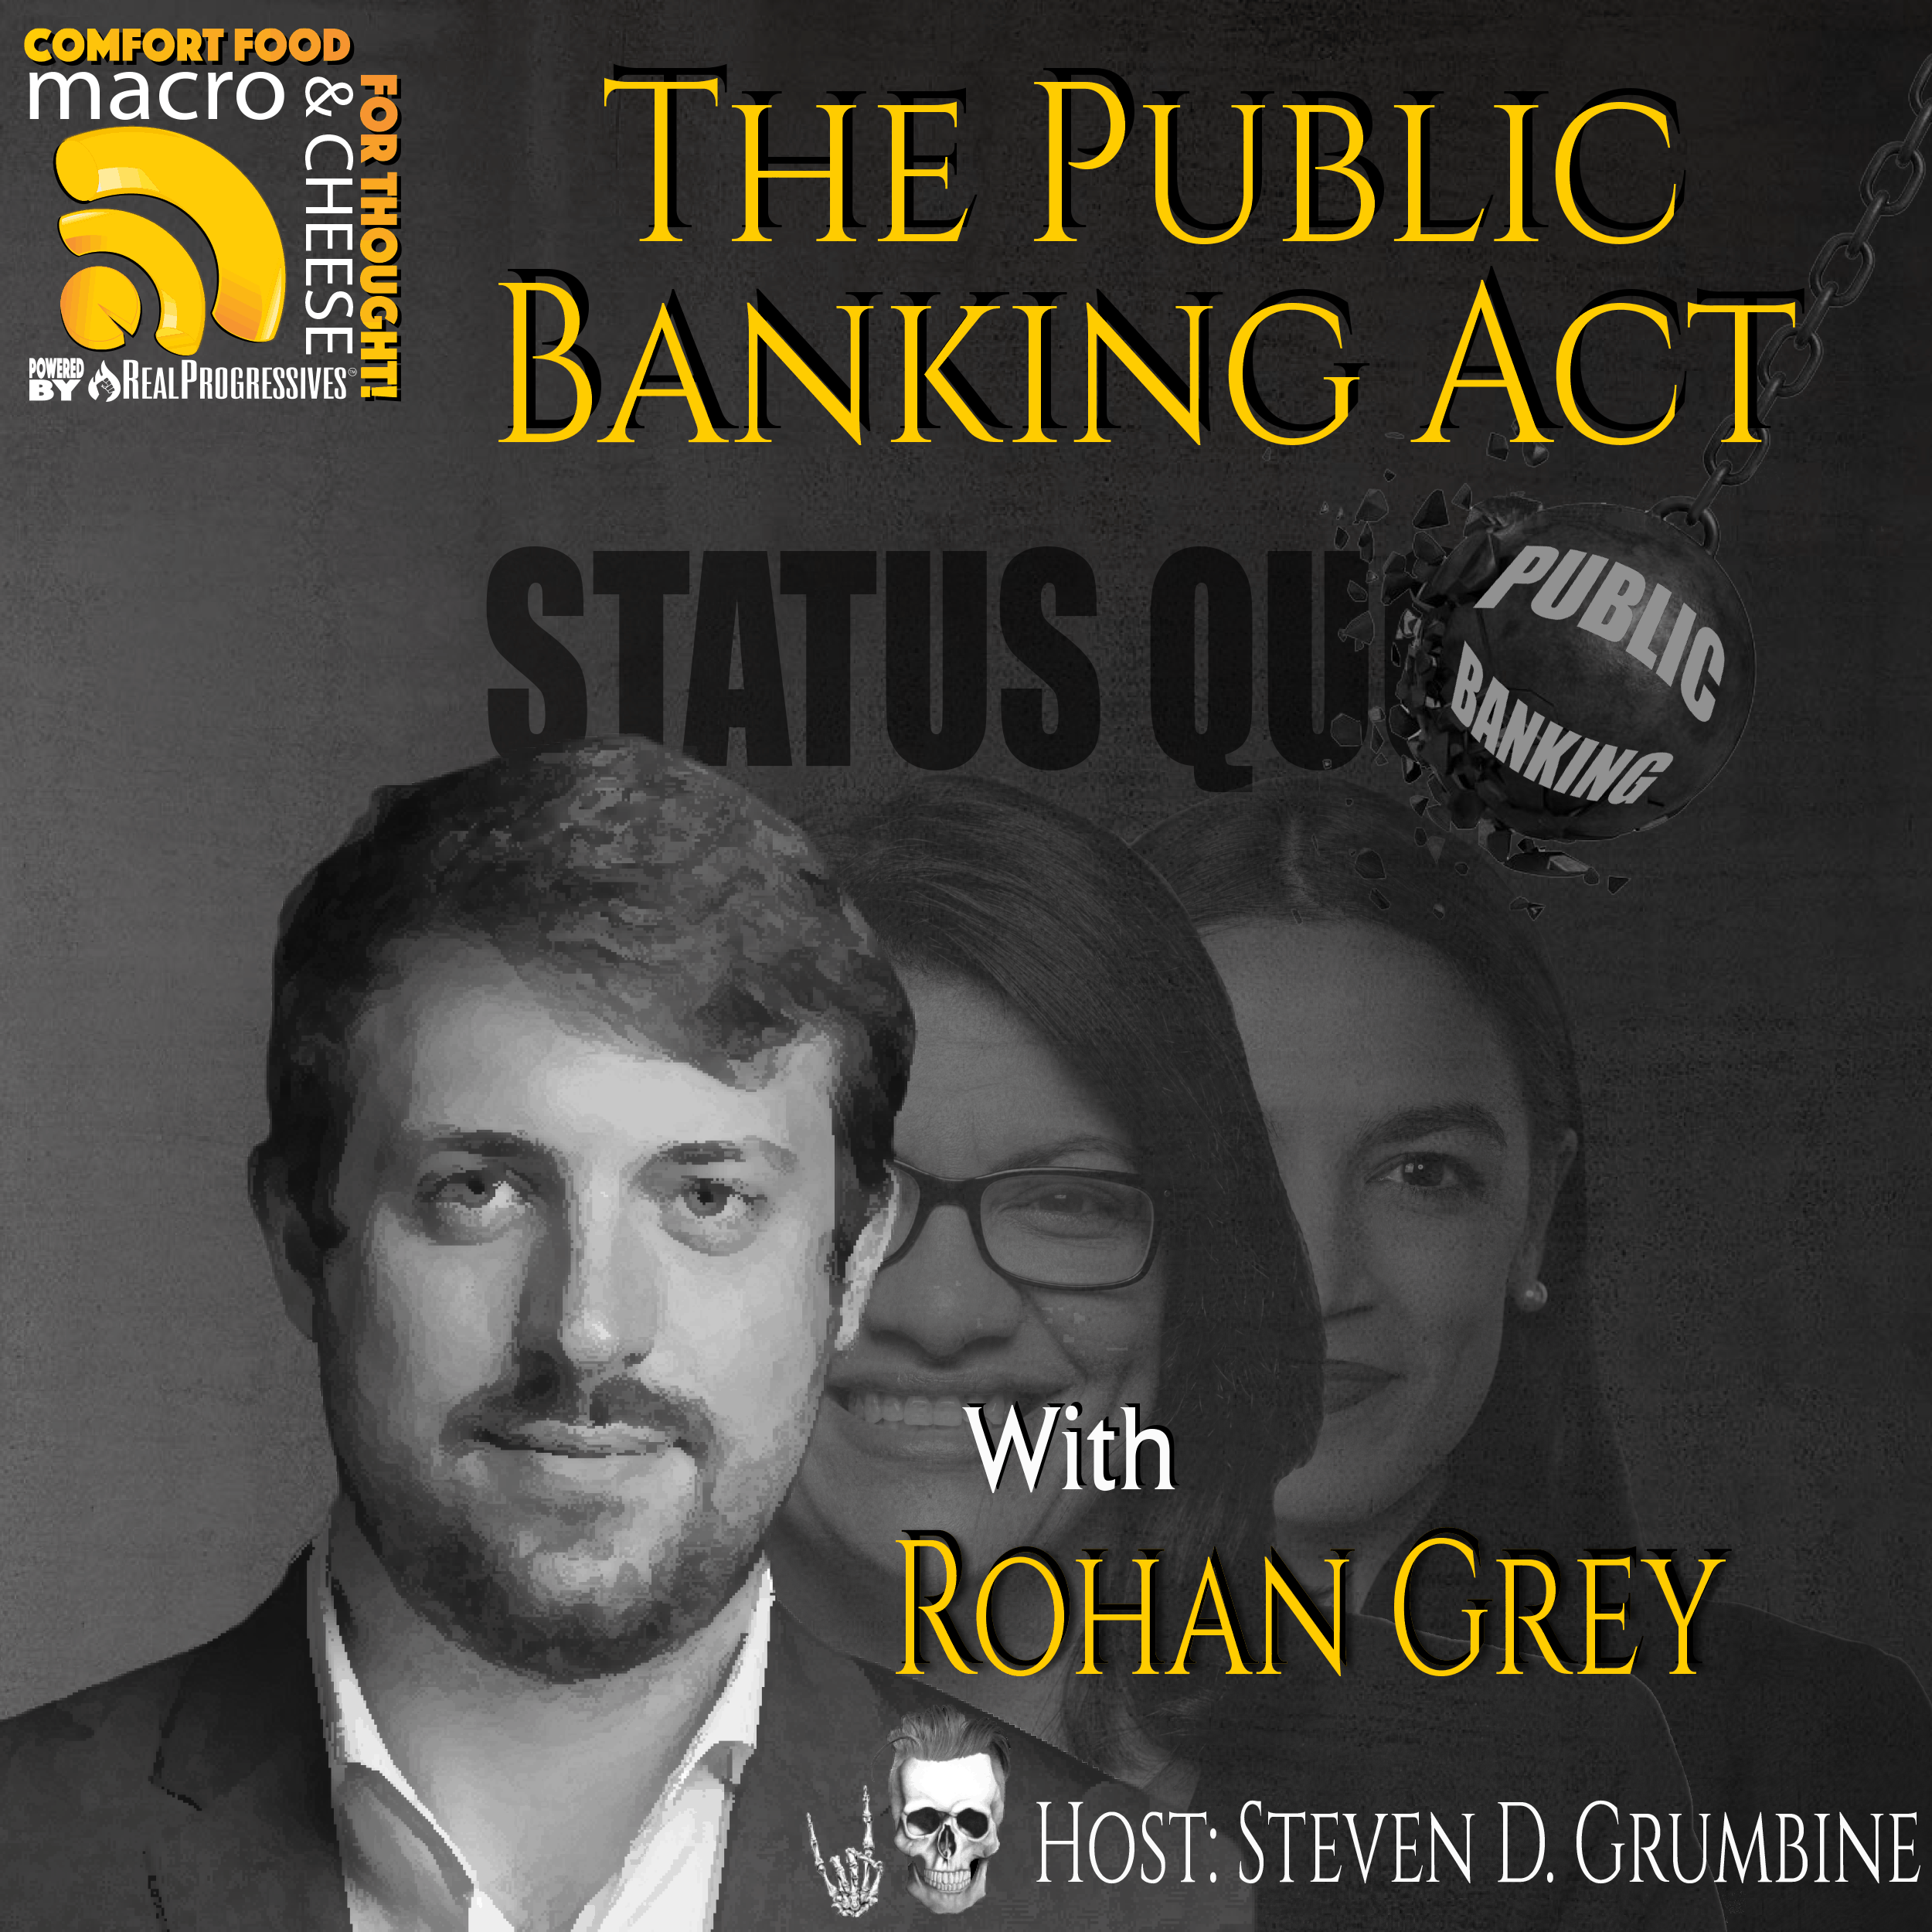 Episode 93 - The Public Banking Act with Rohan Grey